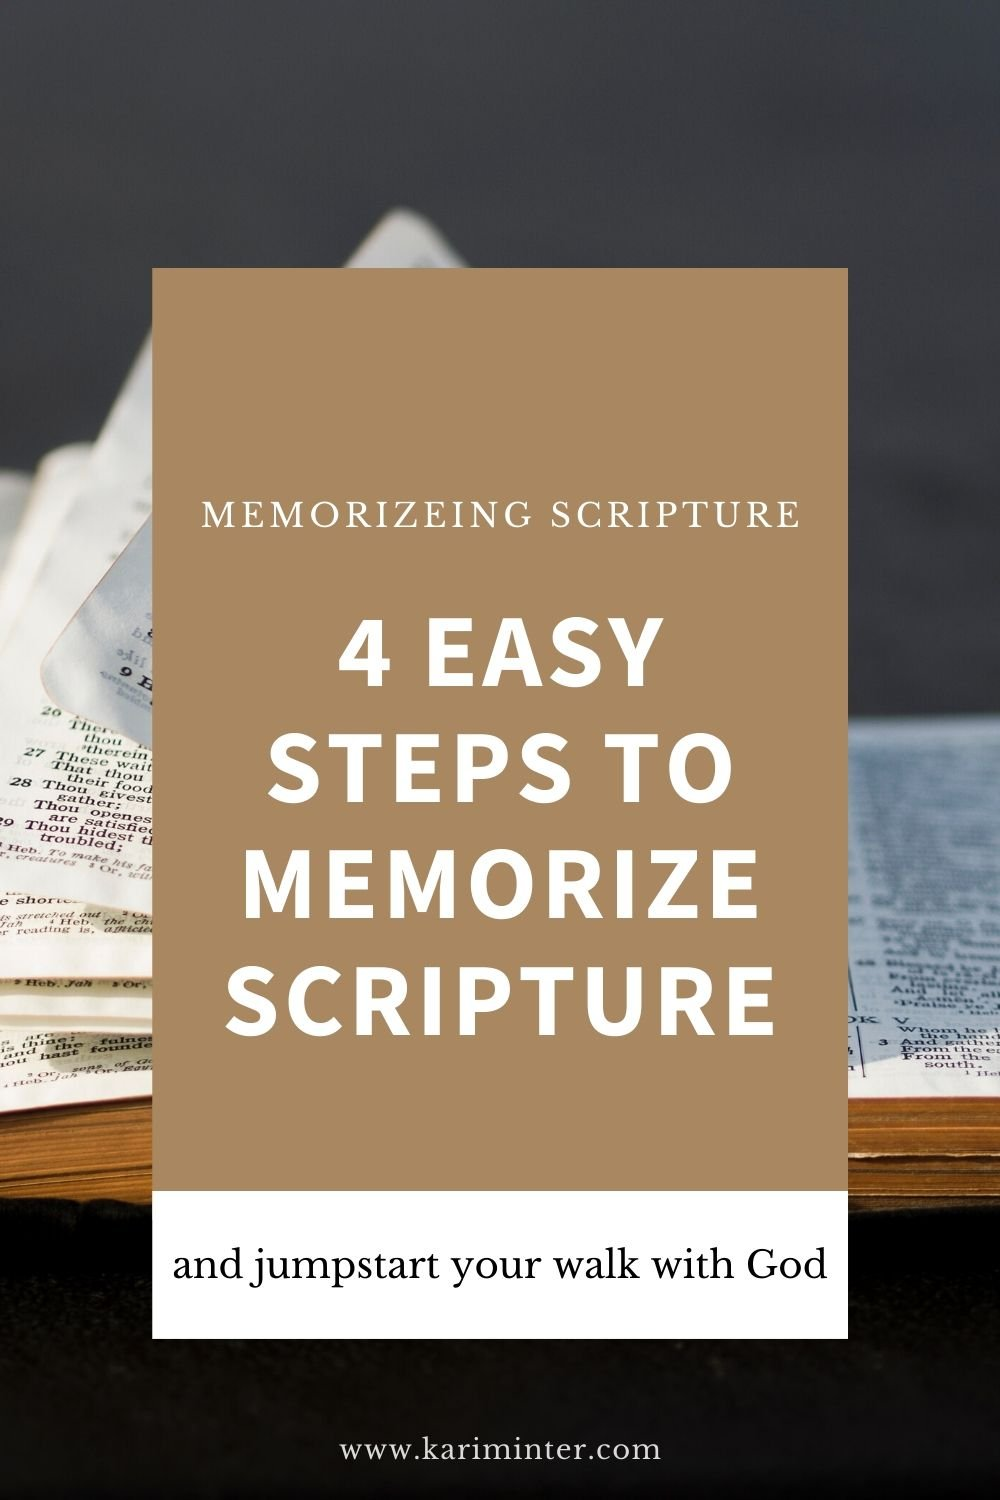 4 tips to memorizing scripture